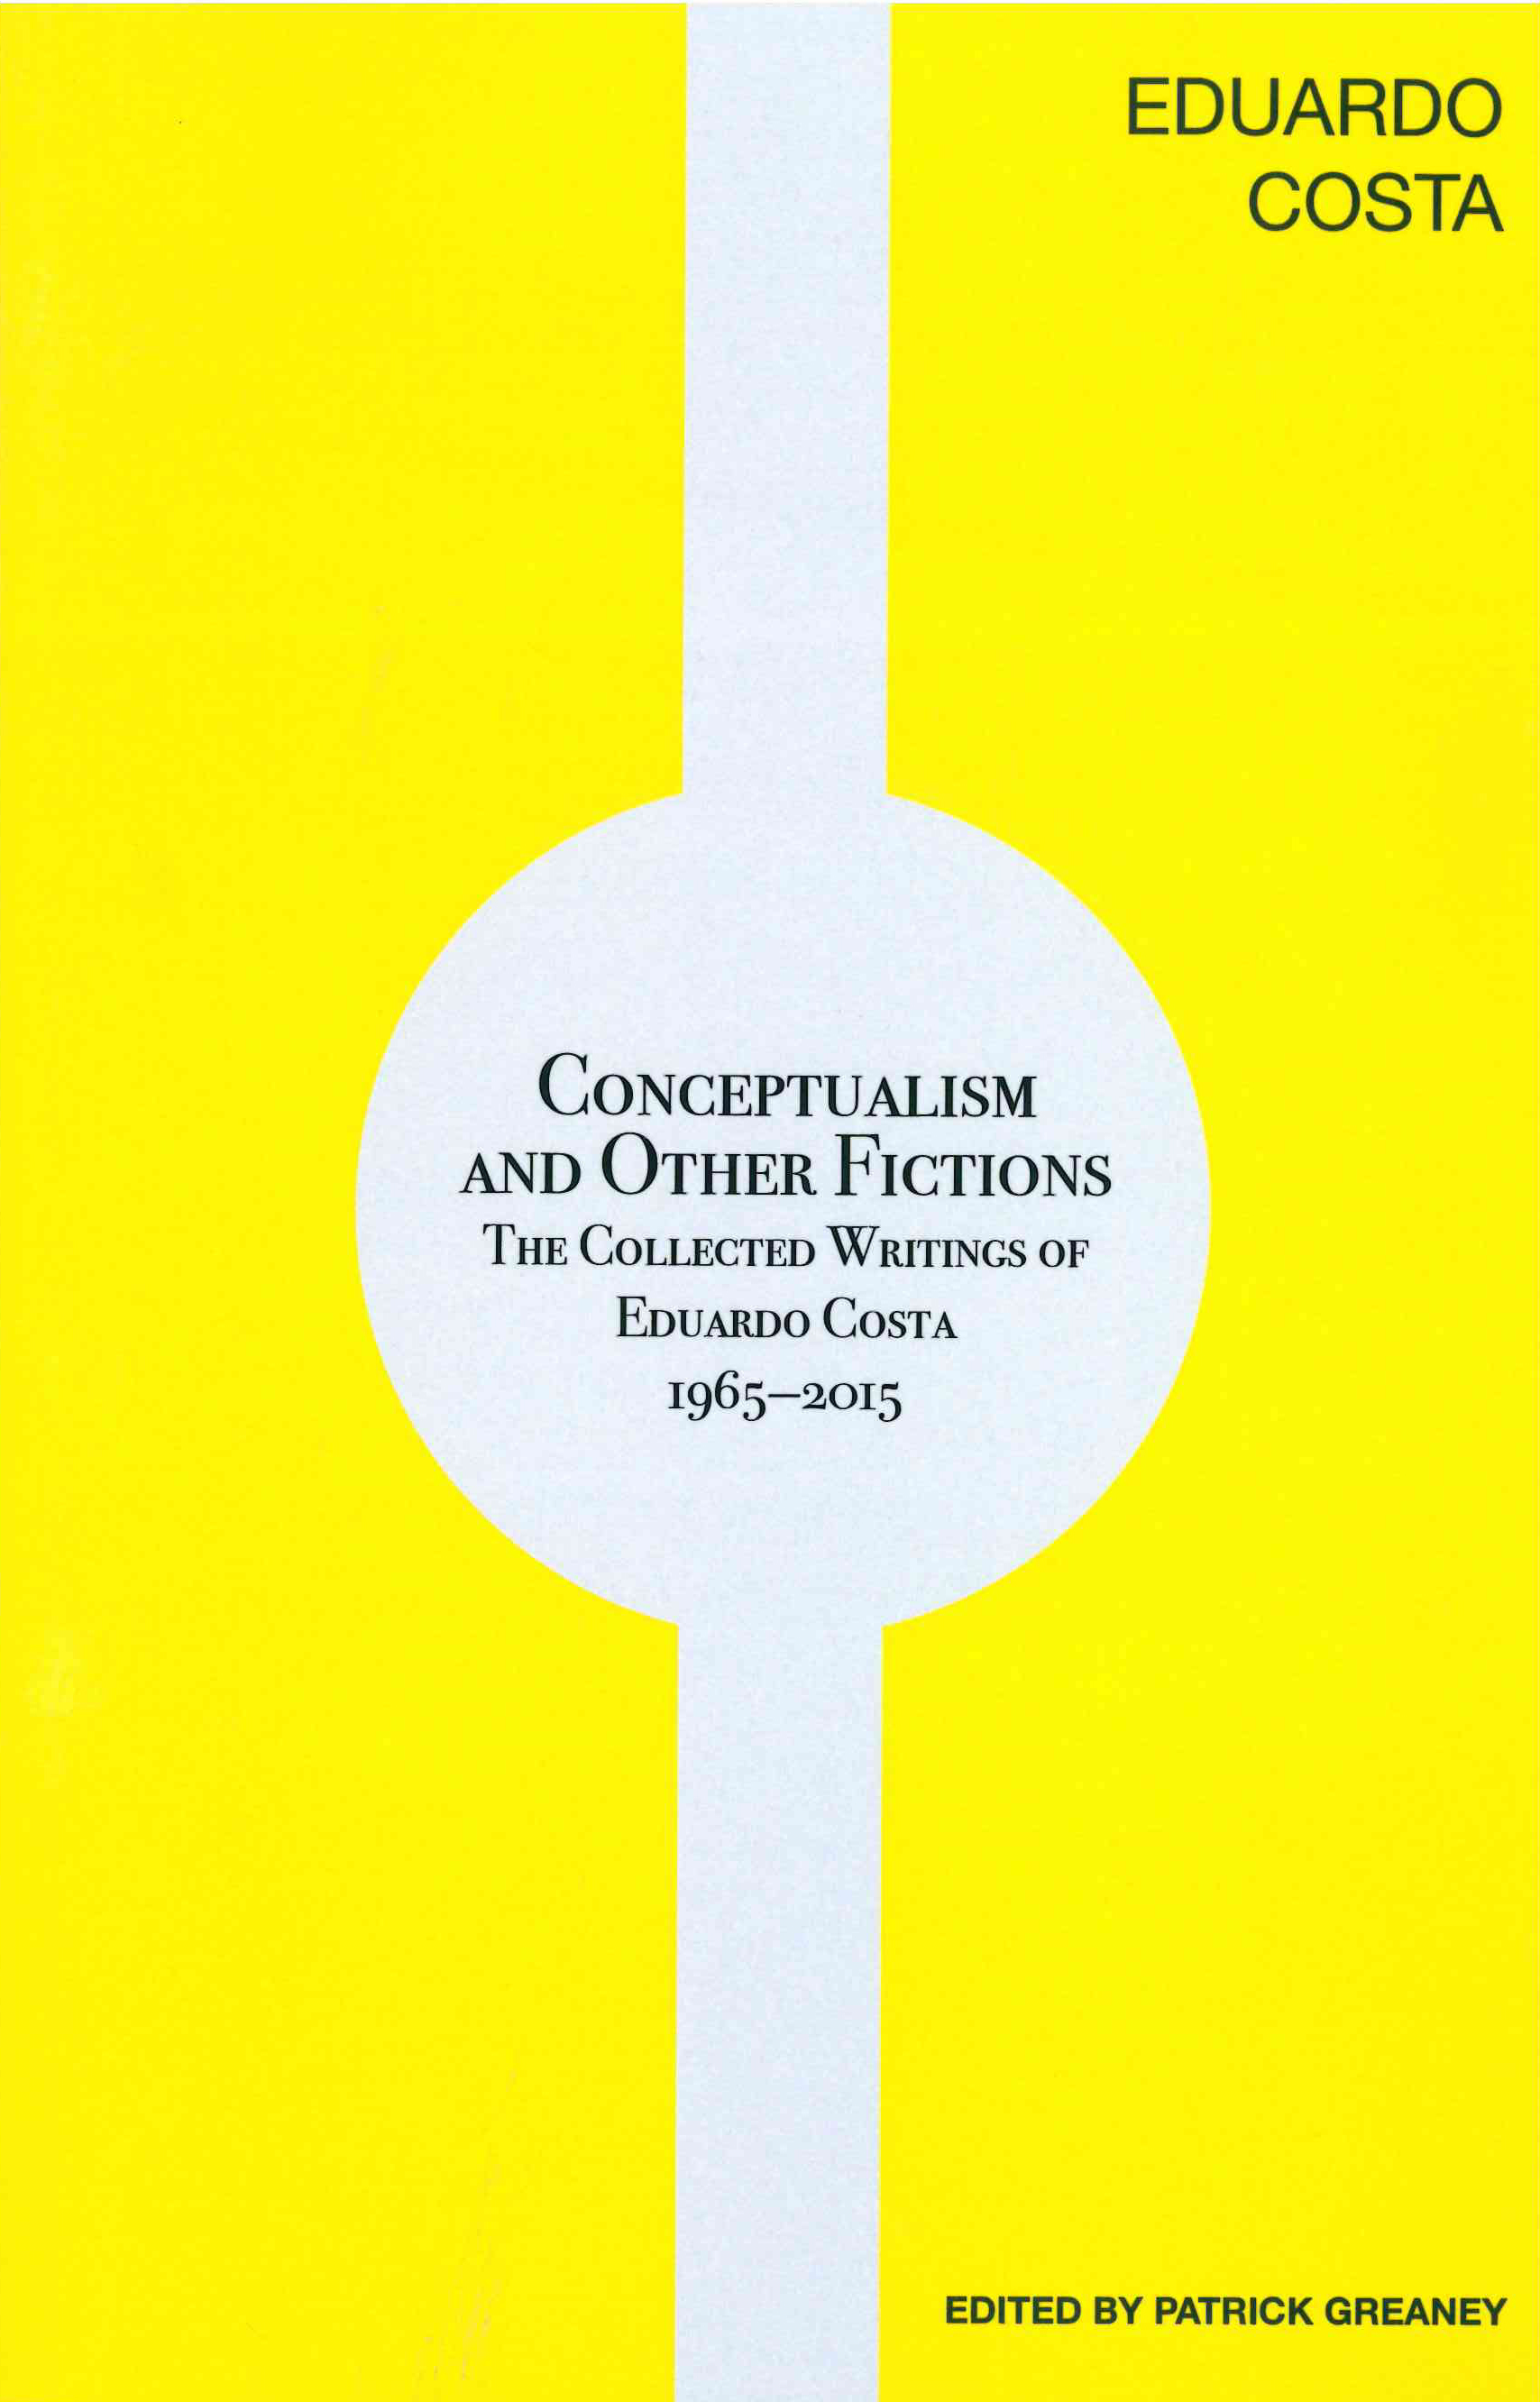 Conceptualism and Other Fictions: The Collected Writings of Eduardo Costa 1965-2015